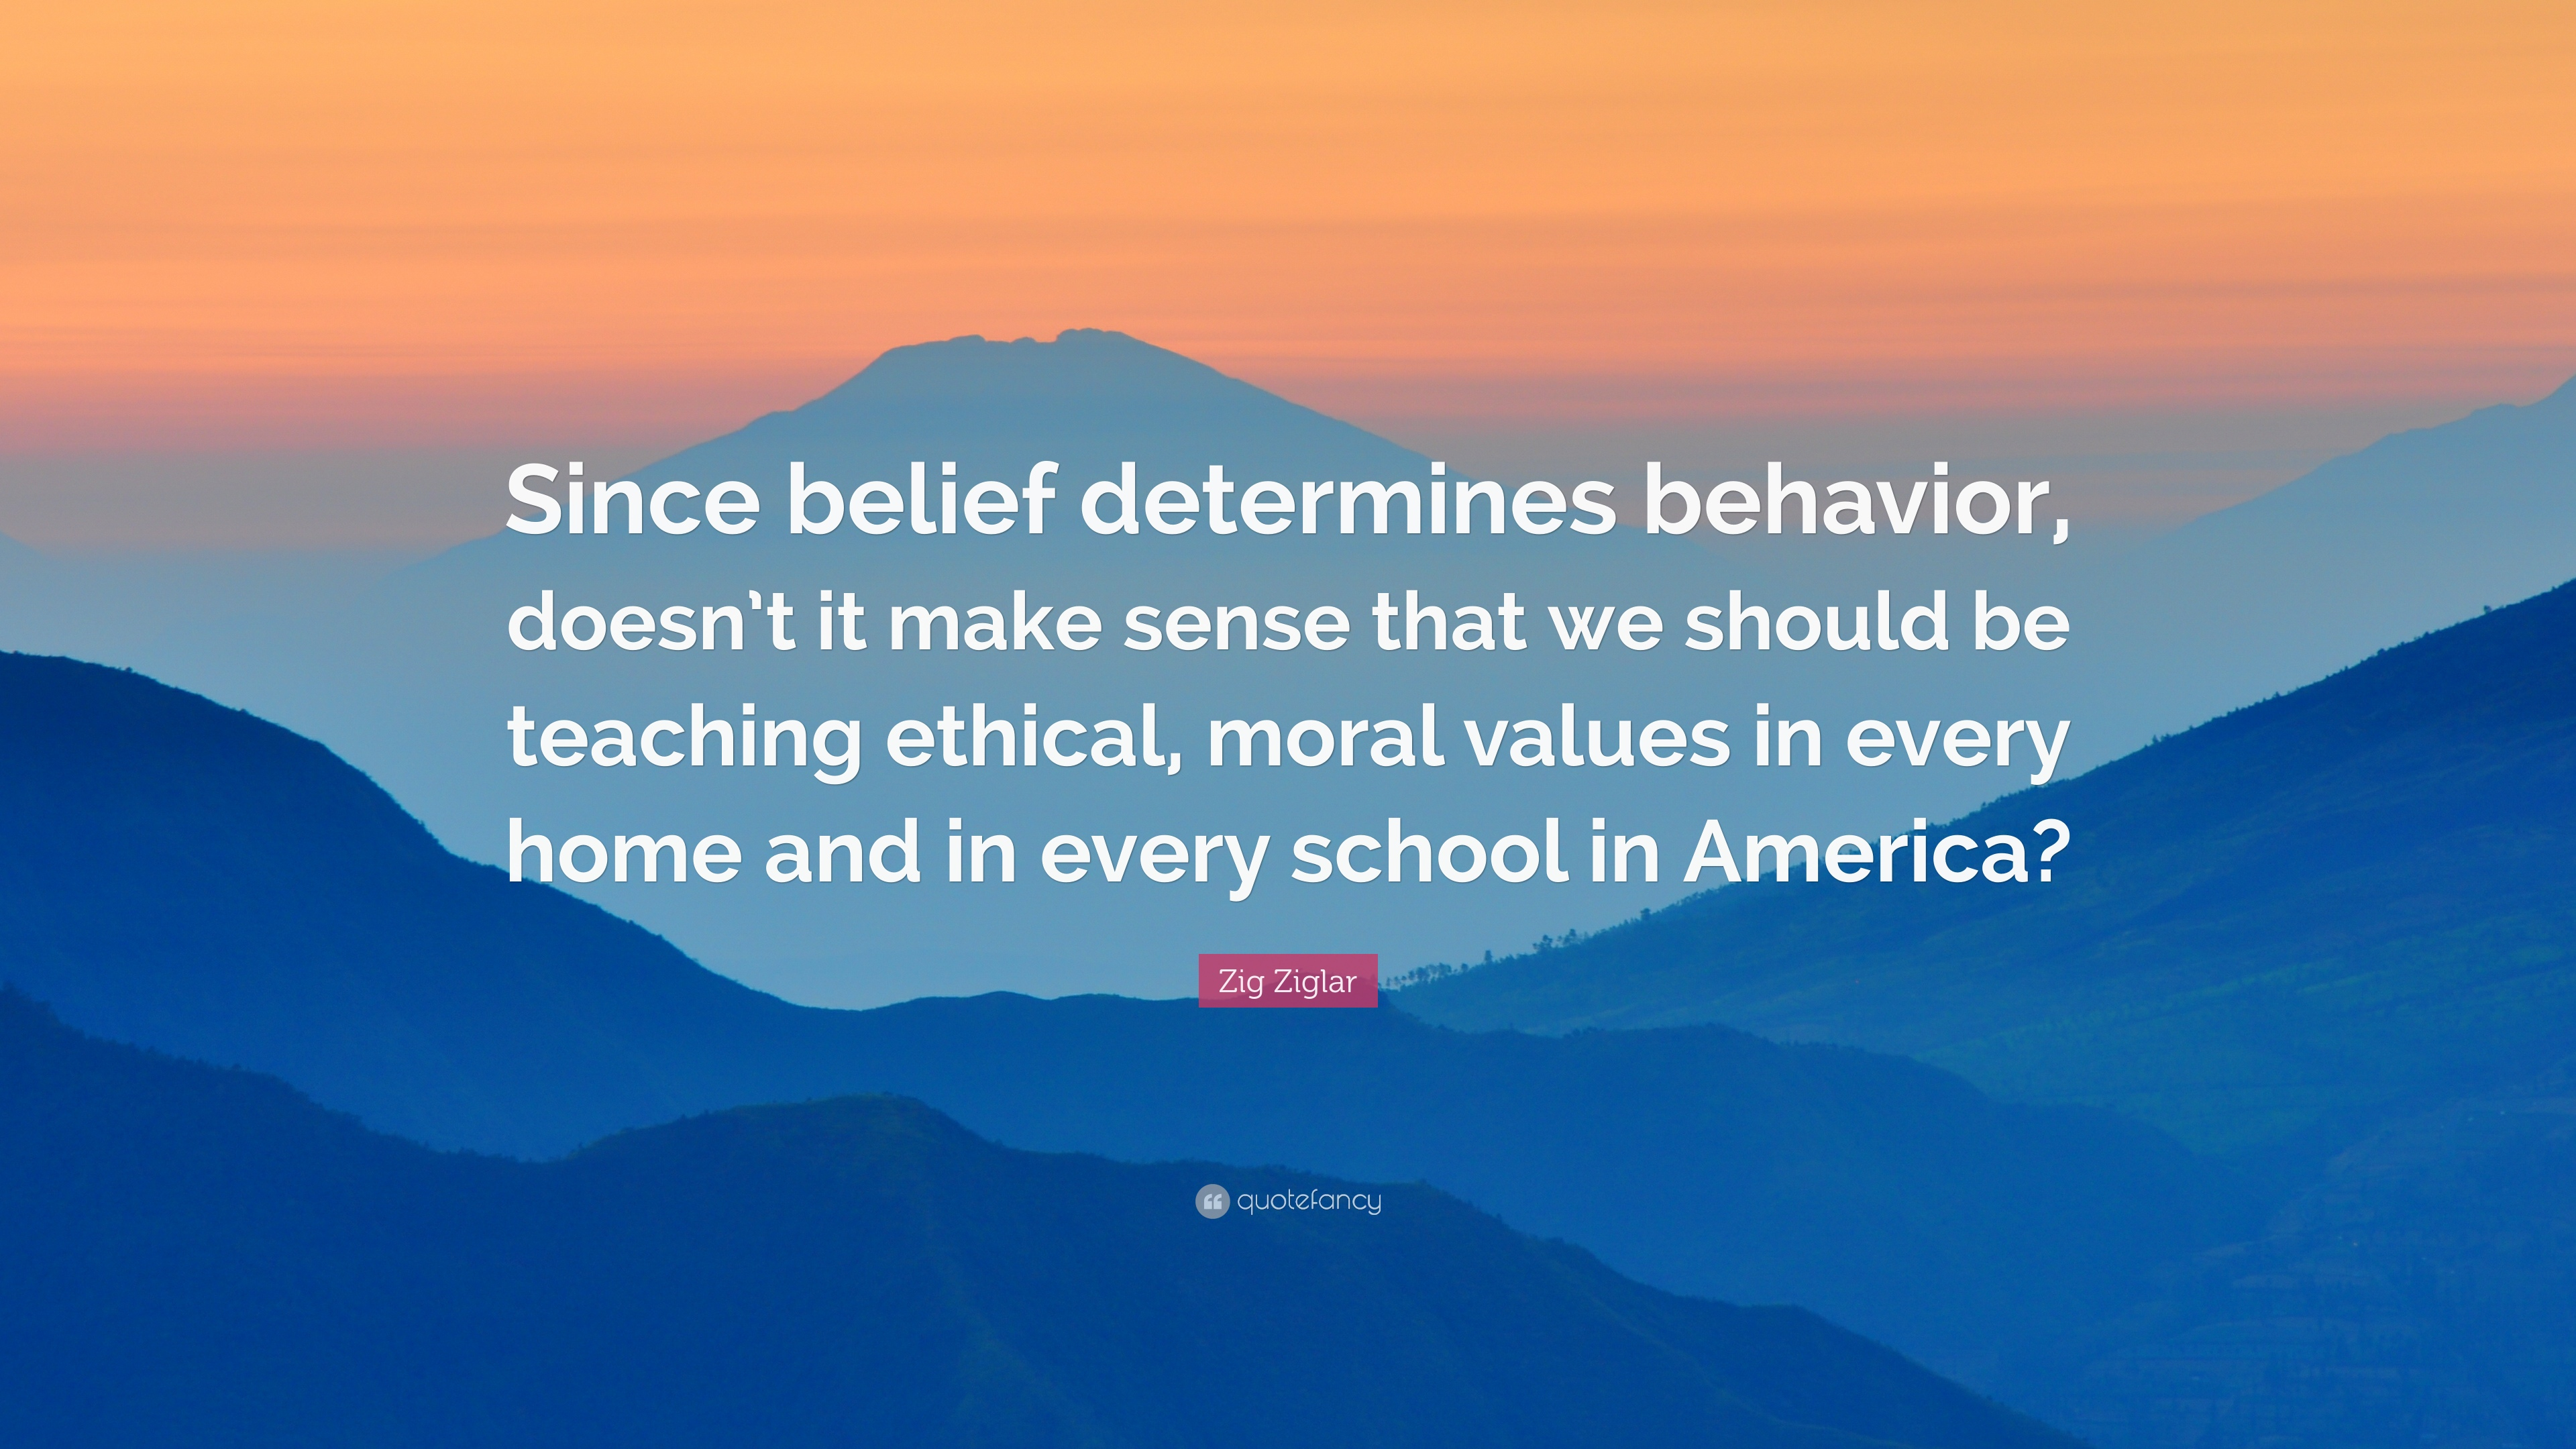 quotes on moral values and ethics 91 121 113 106 quotes on moral values and ethics